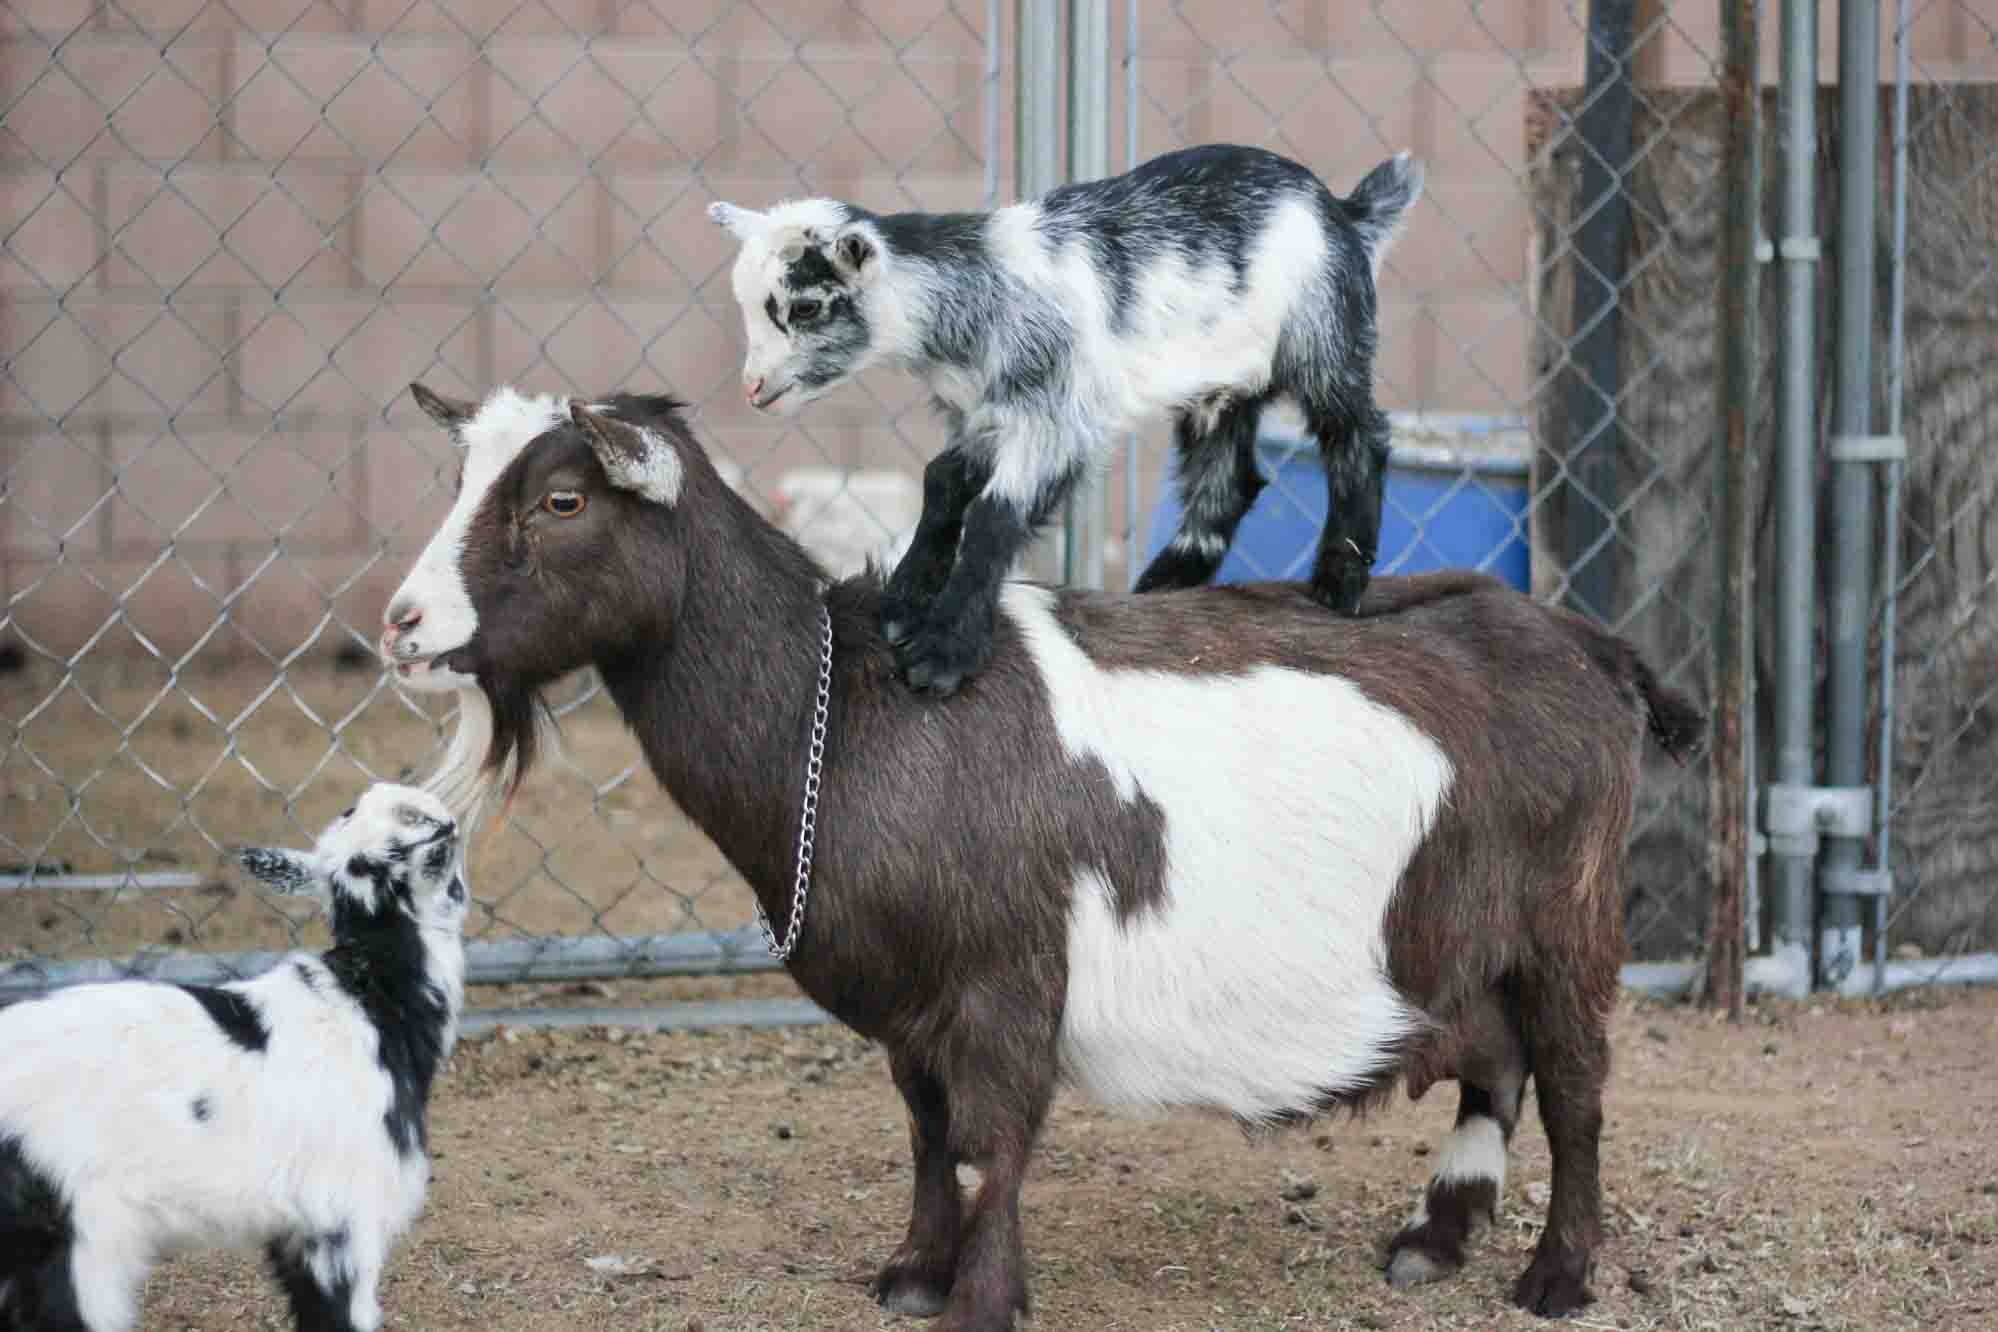 brown and white goat with two black and white baby goats, one on the goat's back